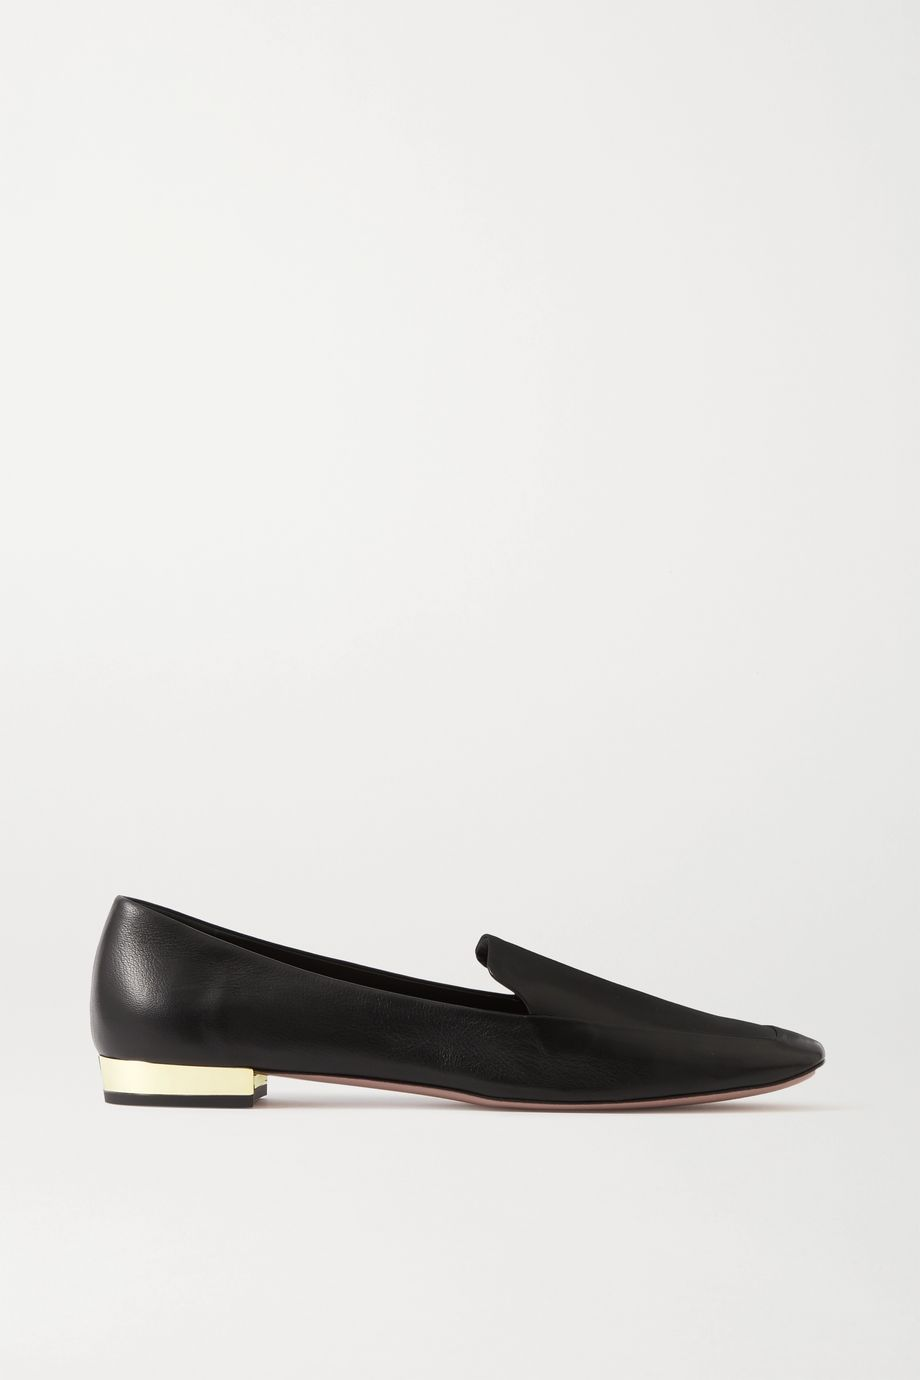 Aquazzura Greenwich 10 leather loafers